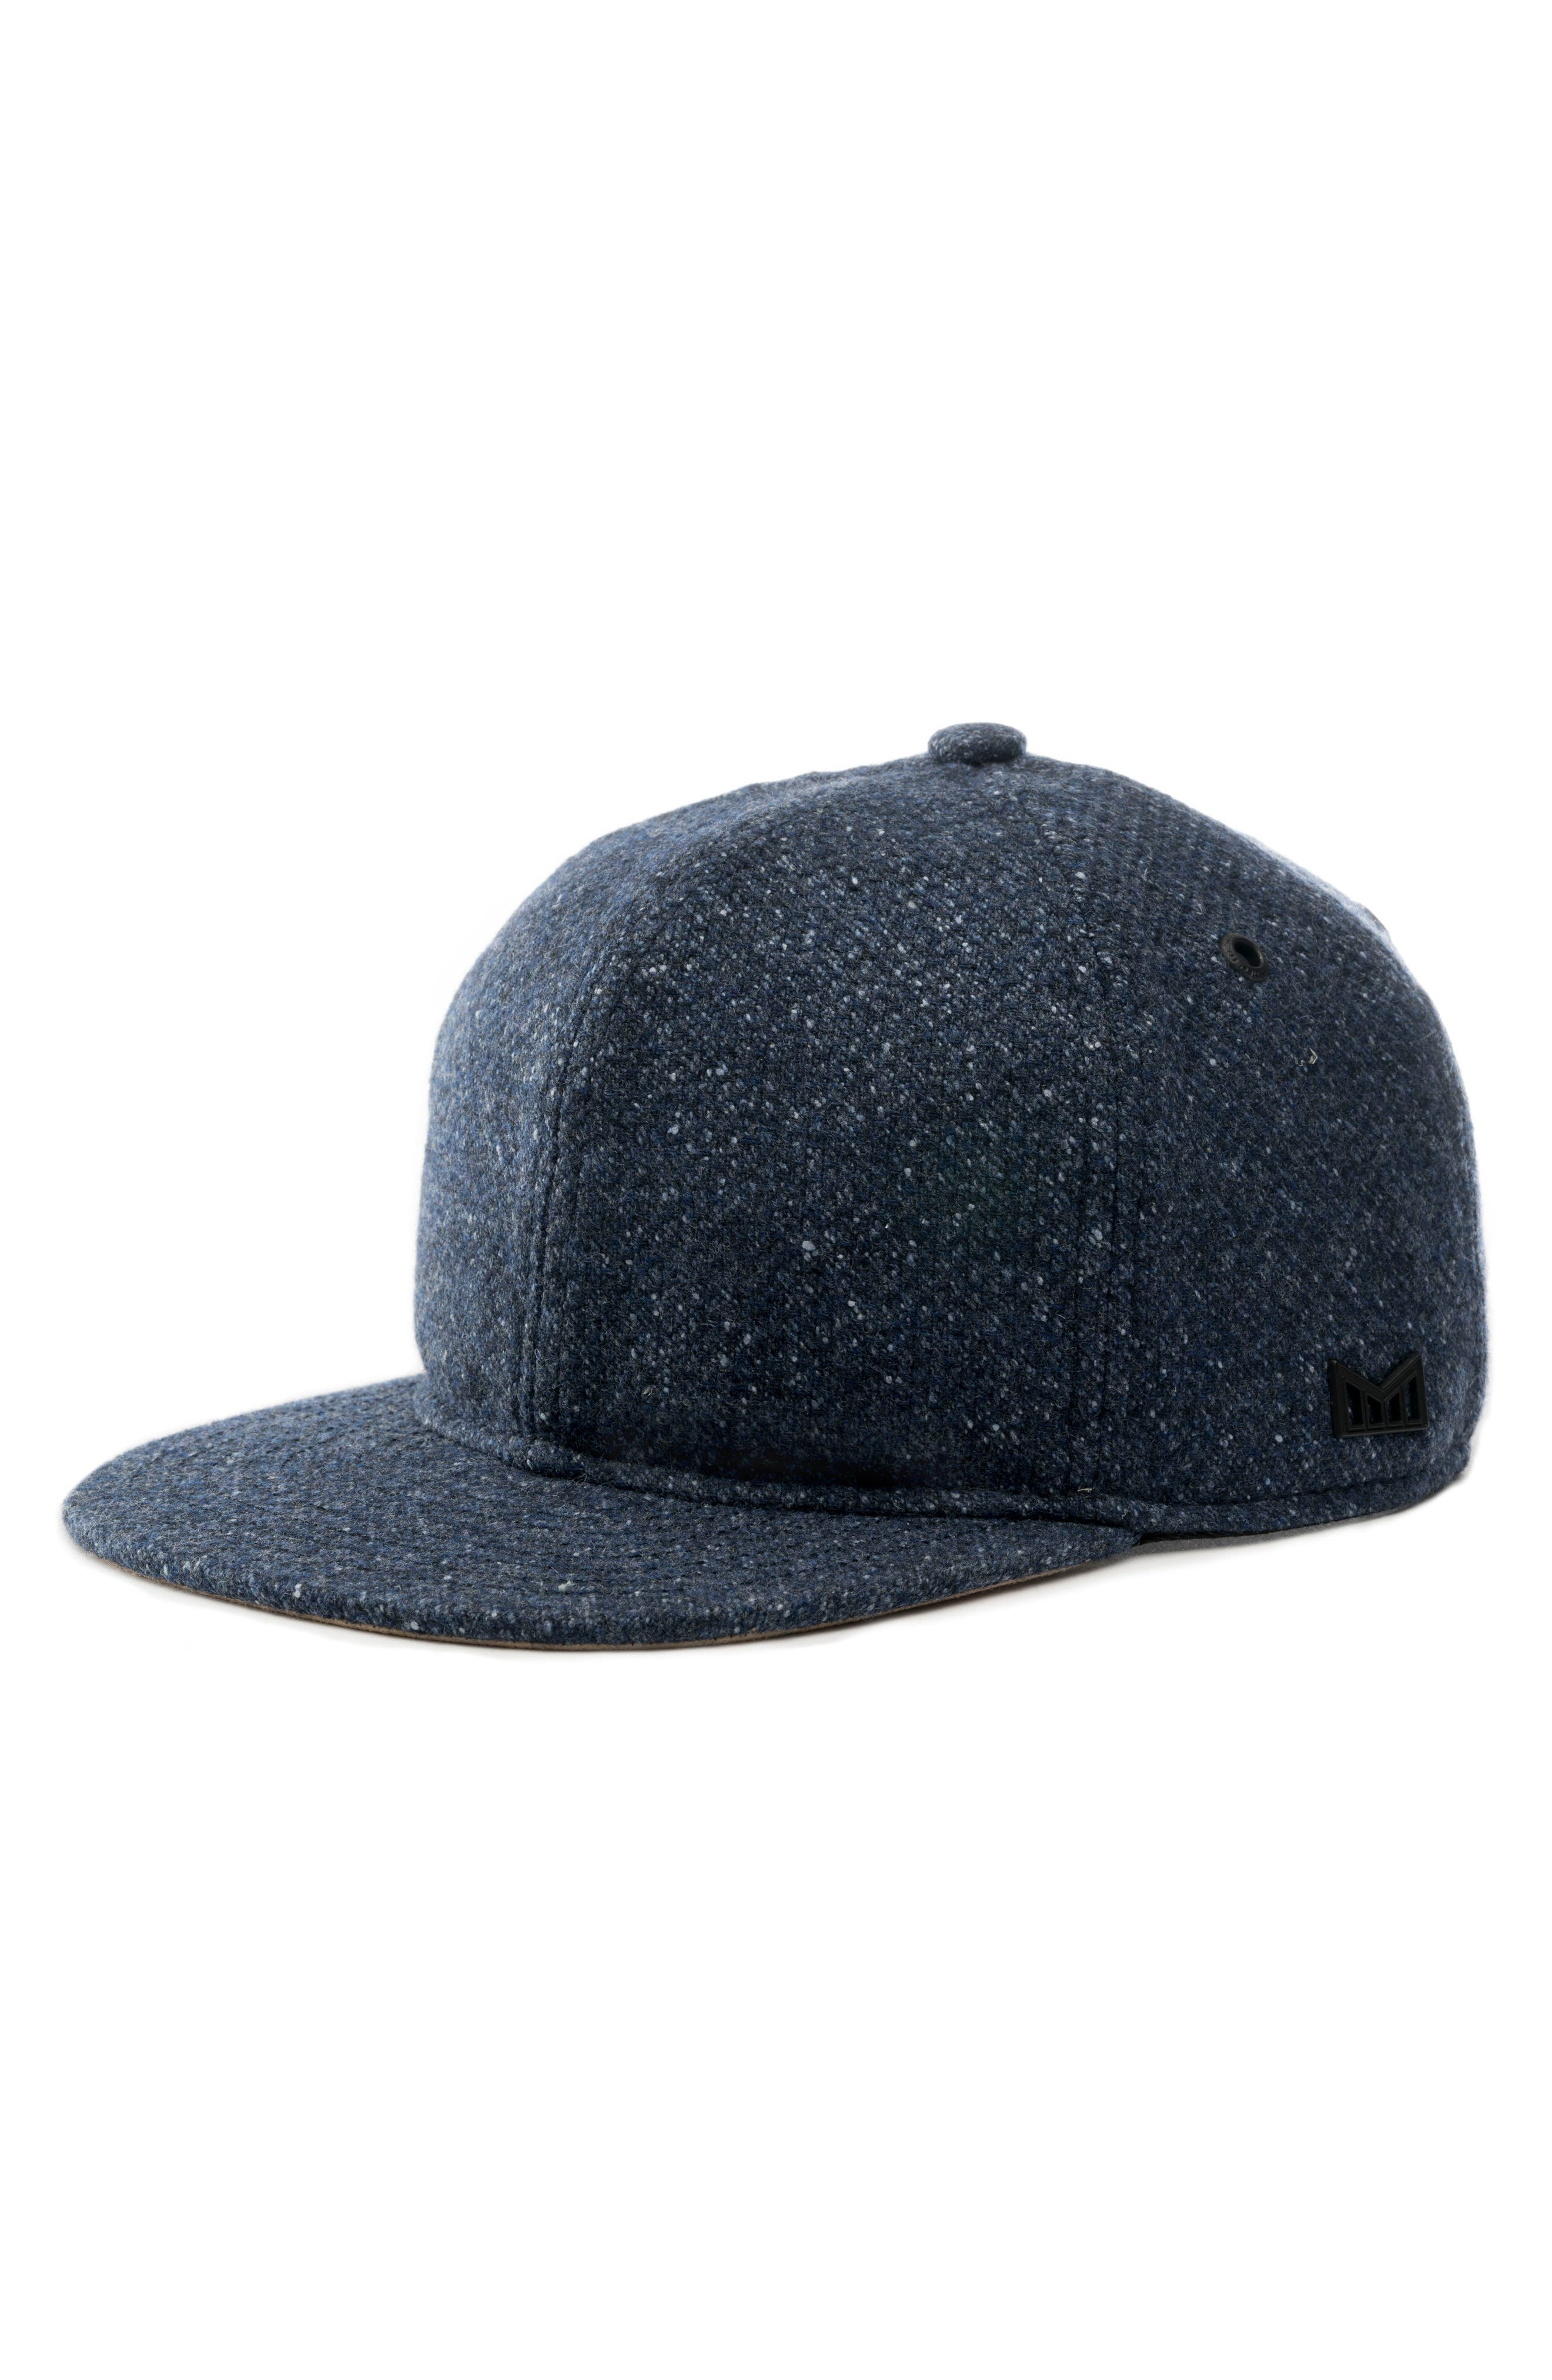 Kingpin Ball Cap,                         Main,                         color, BLUE